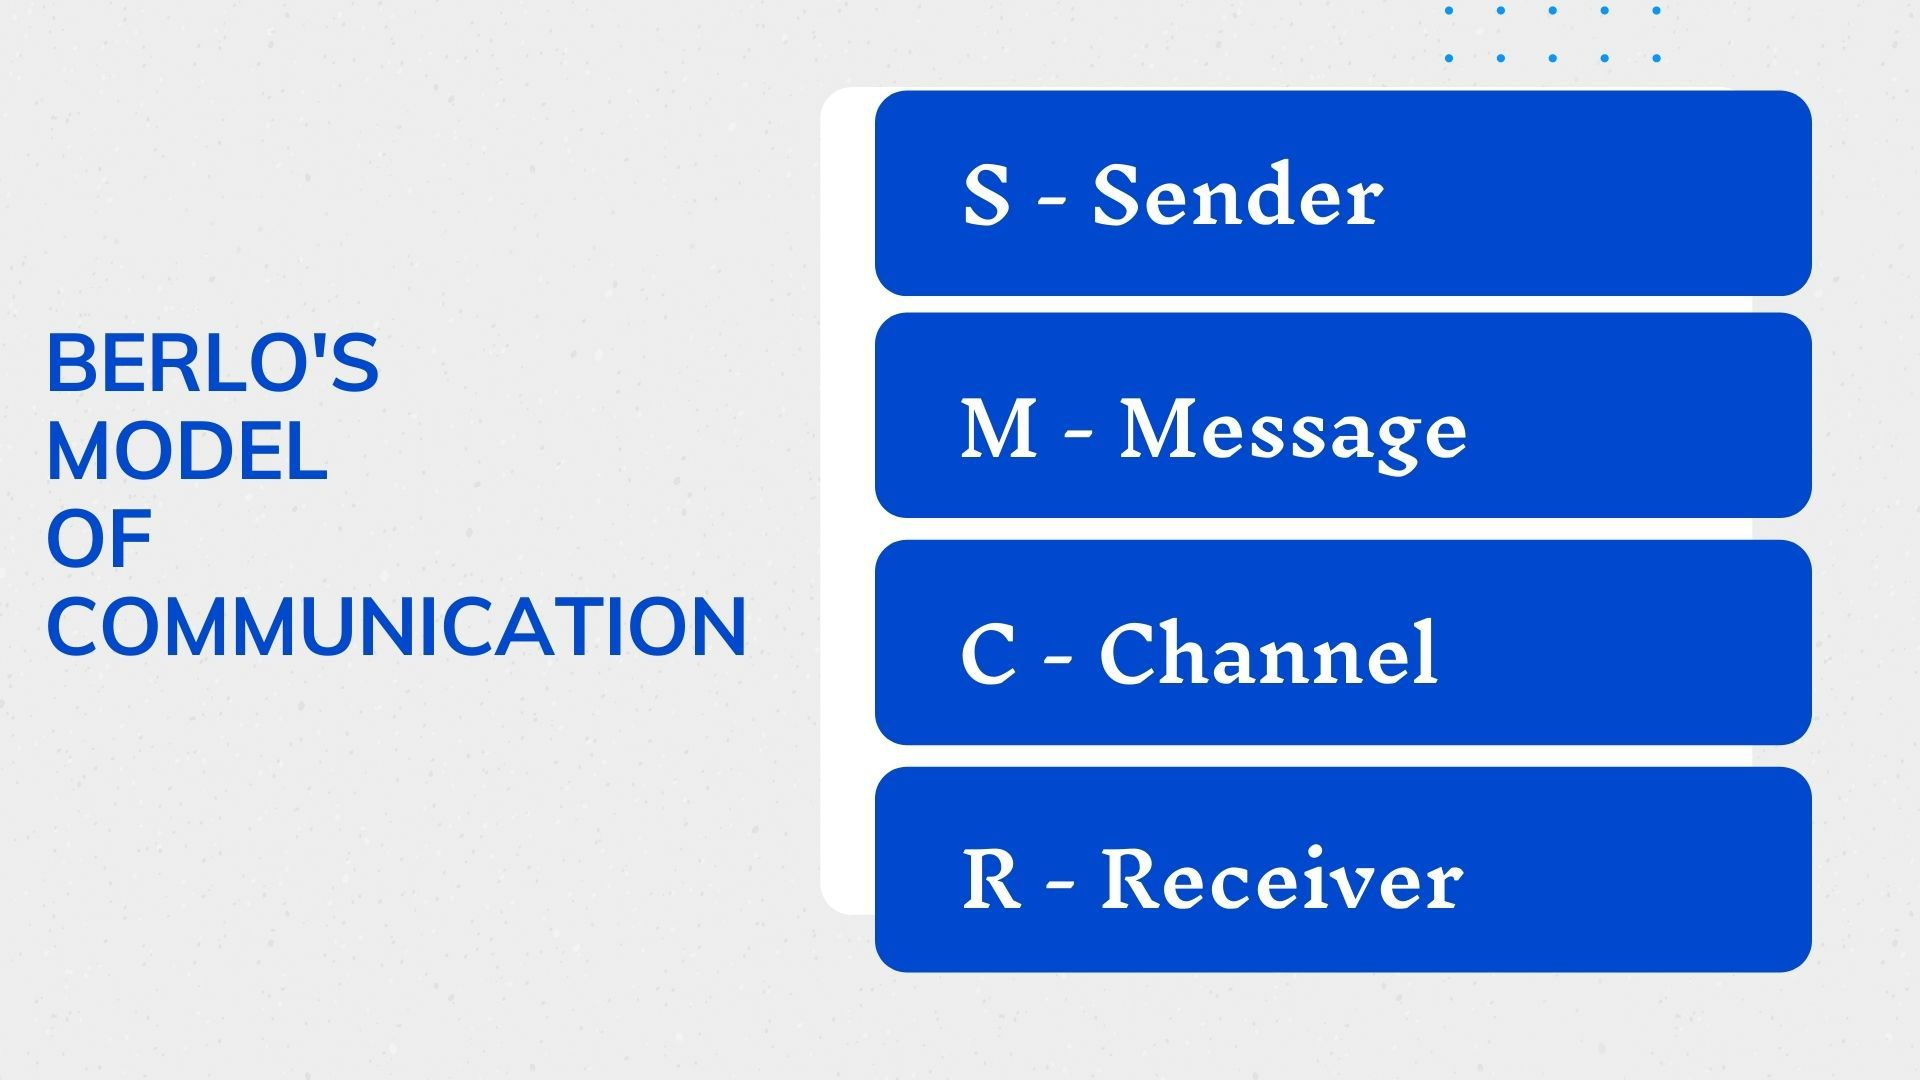 SCMR Model of Communication